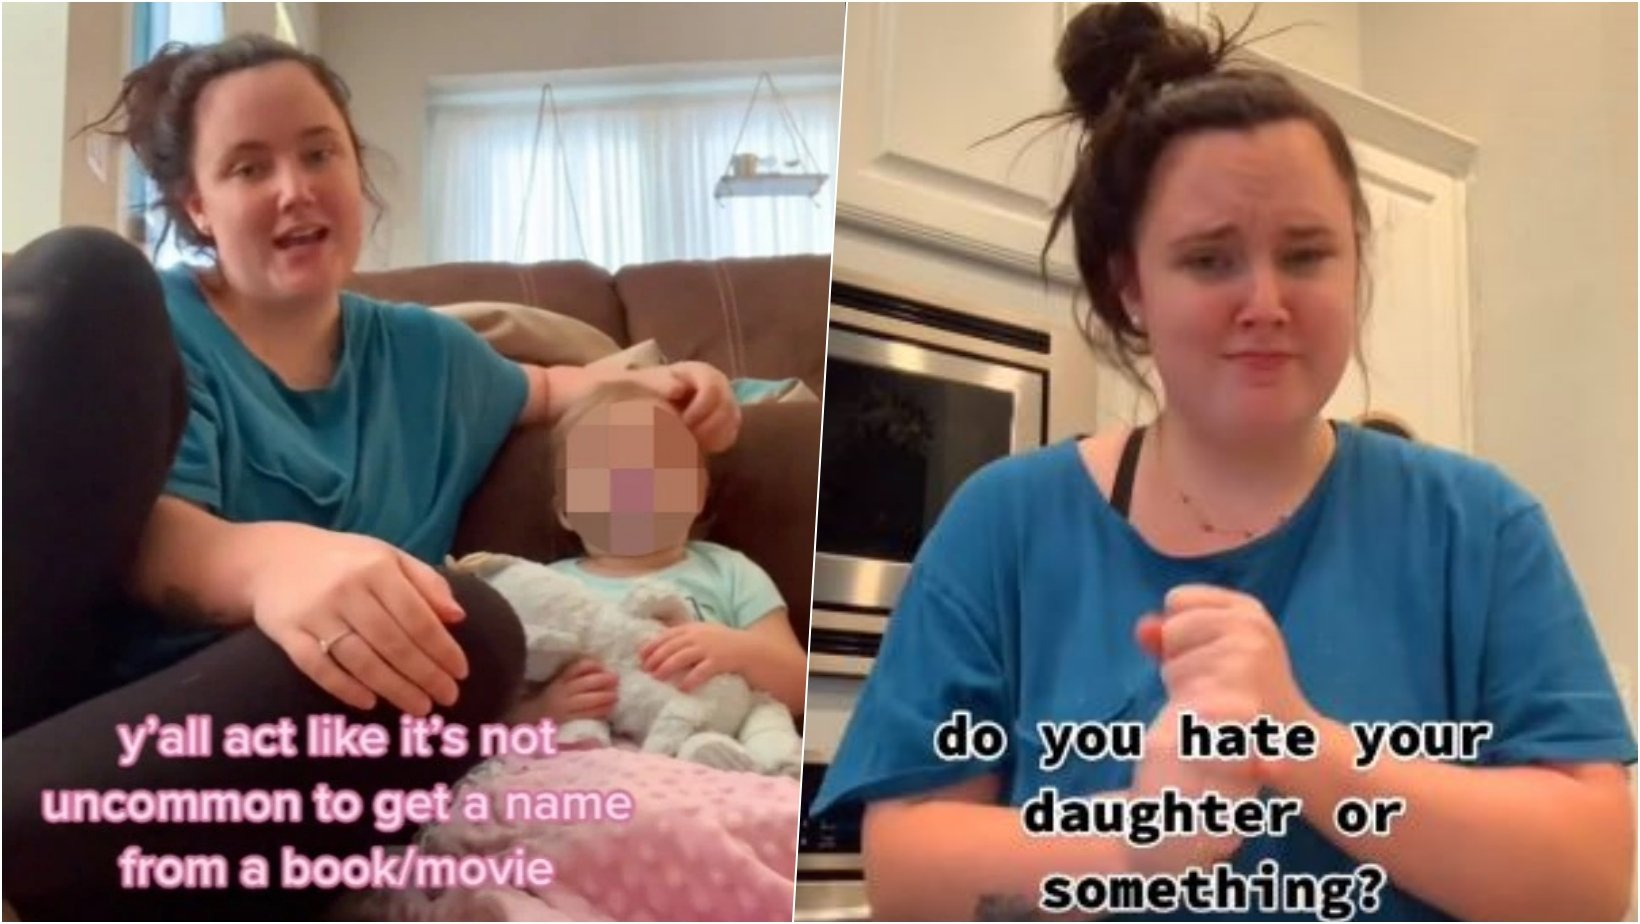 6 facebook cover 30.jpg?resize=1200,630 - Mom Was Accused For Hating Her Own Daughter After Giving Her An Unusual Name